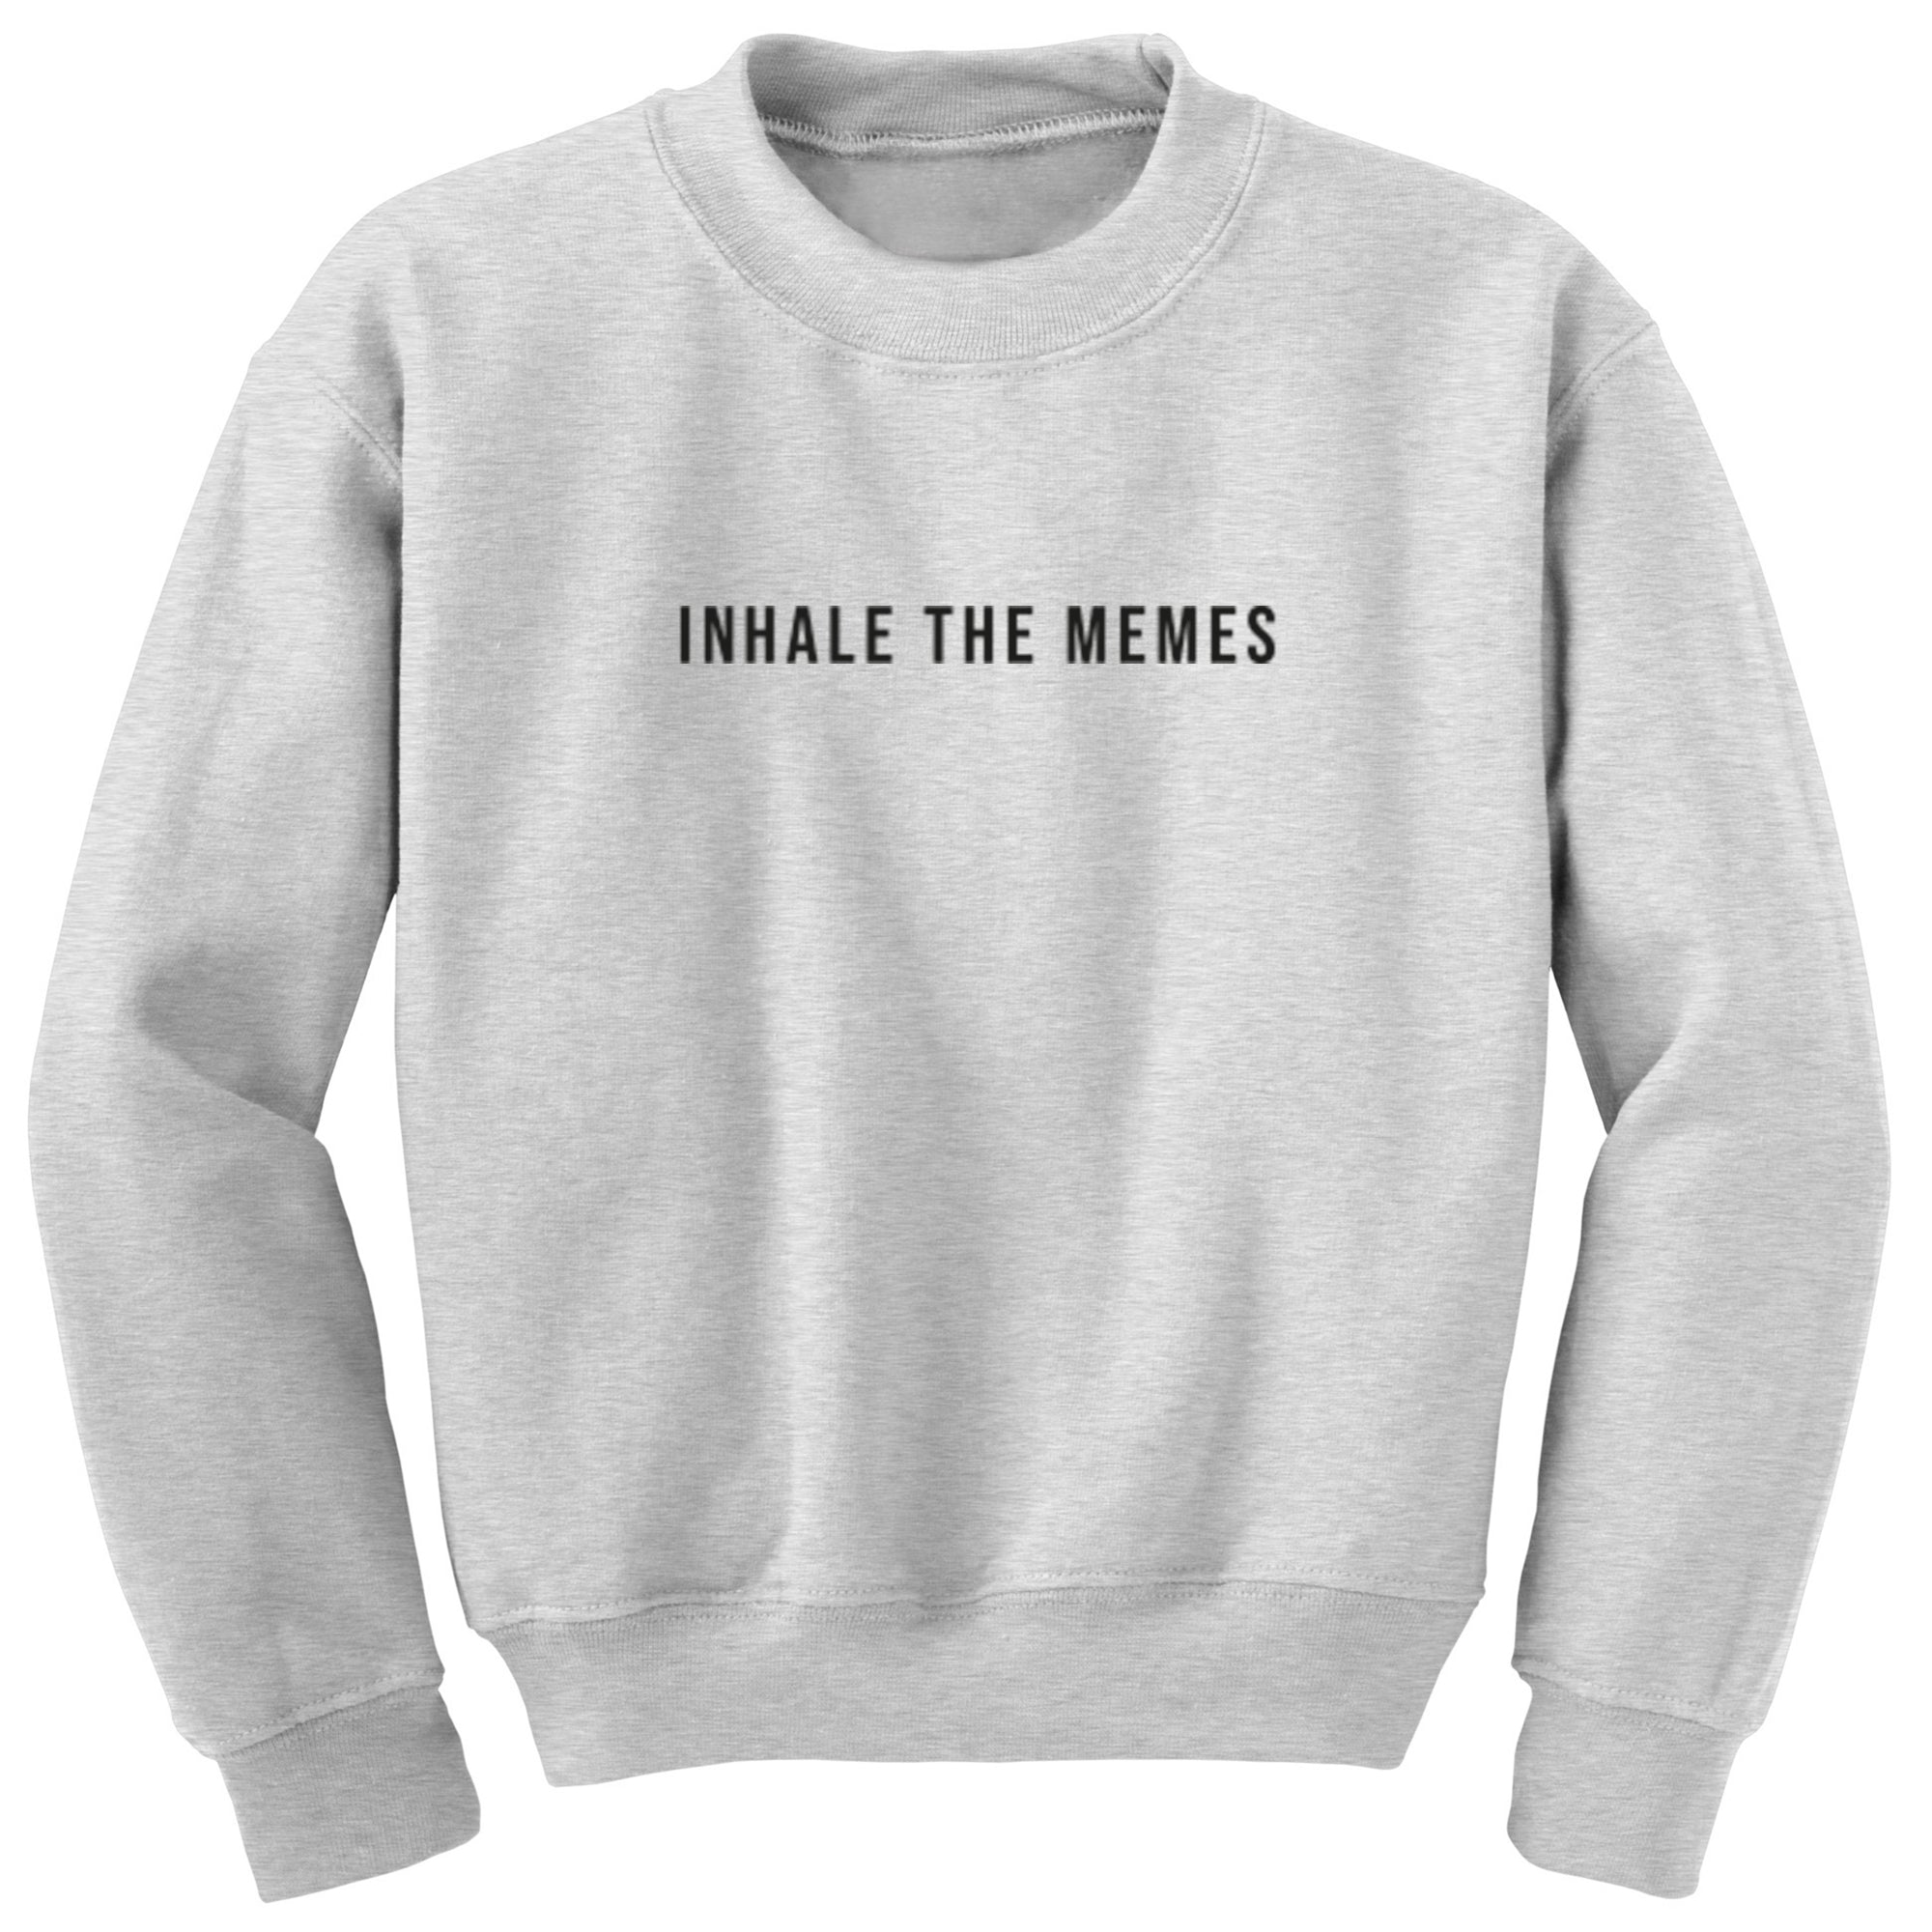 Inhale The Memes Unisex Jumper S1075 - Illustrated Identity Ltd.